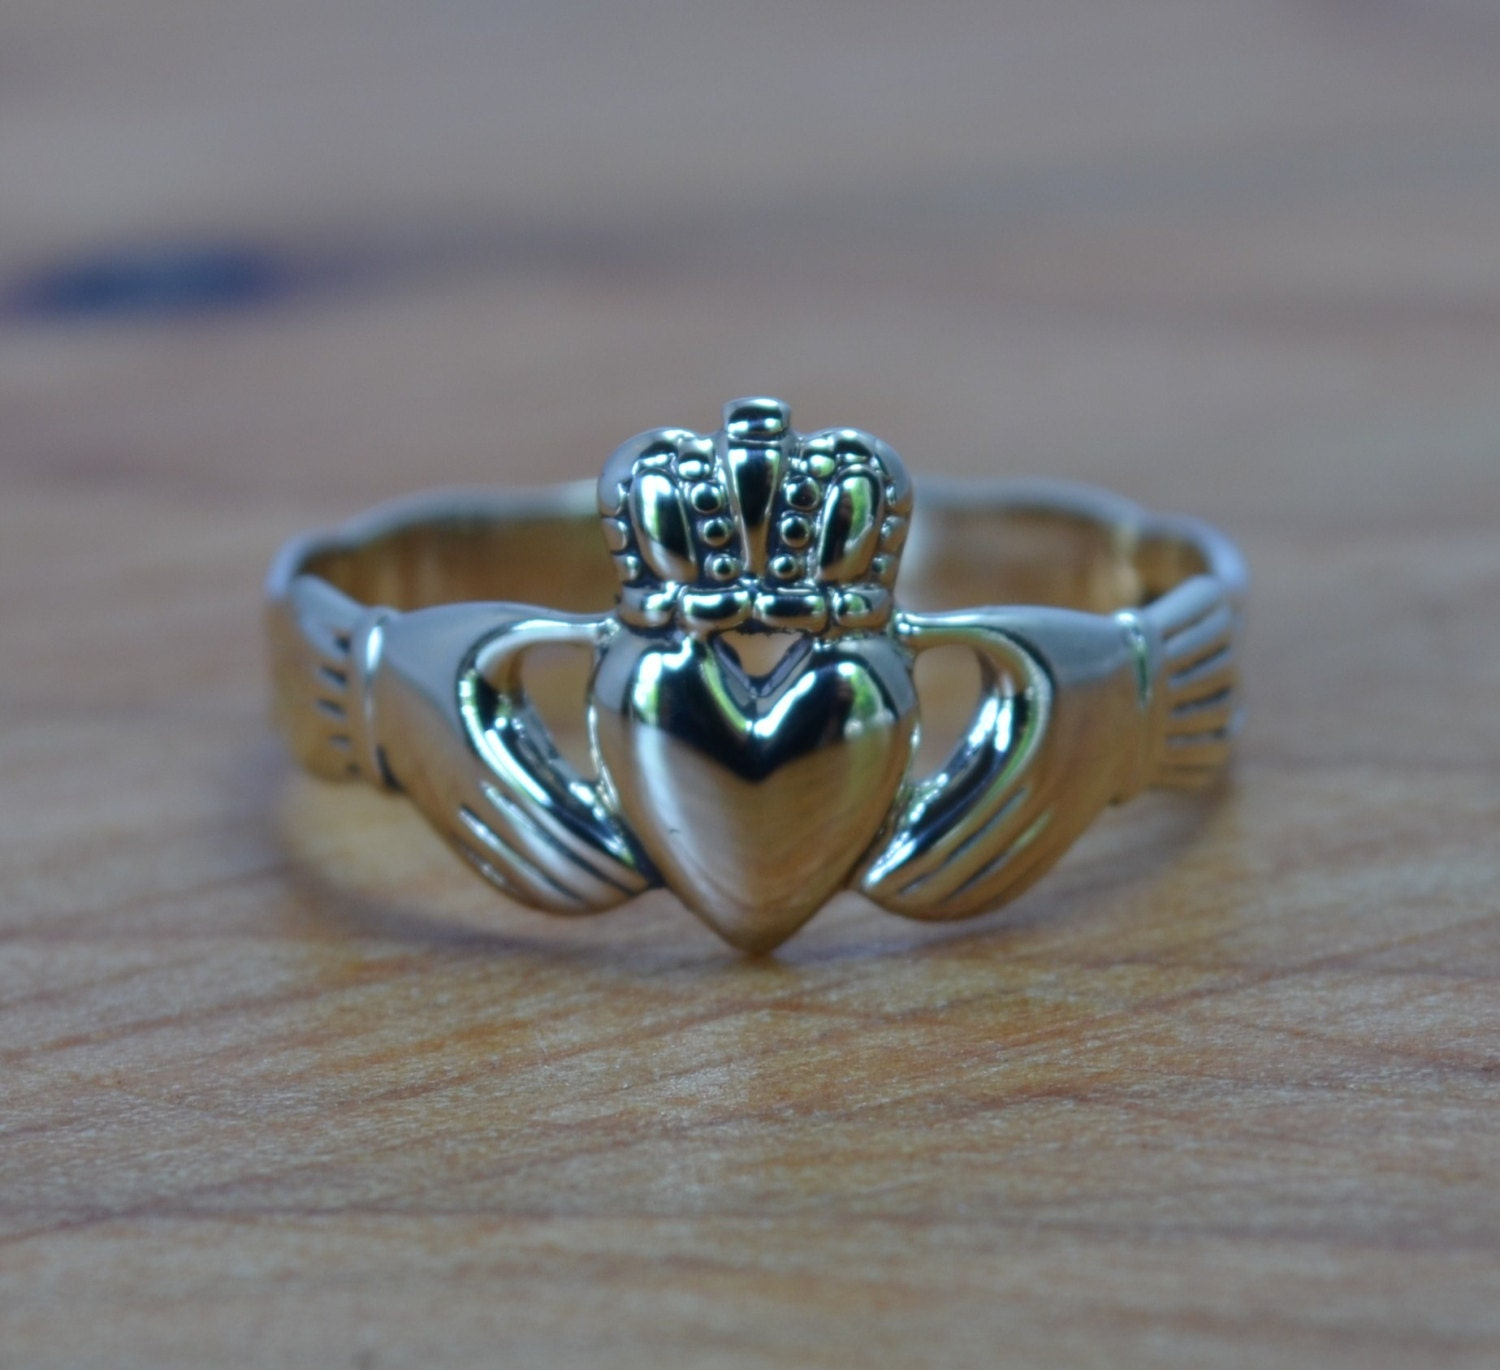 claddagh engagement ring - photo #29